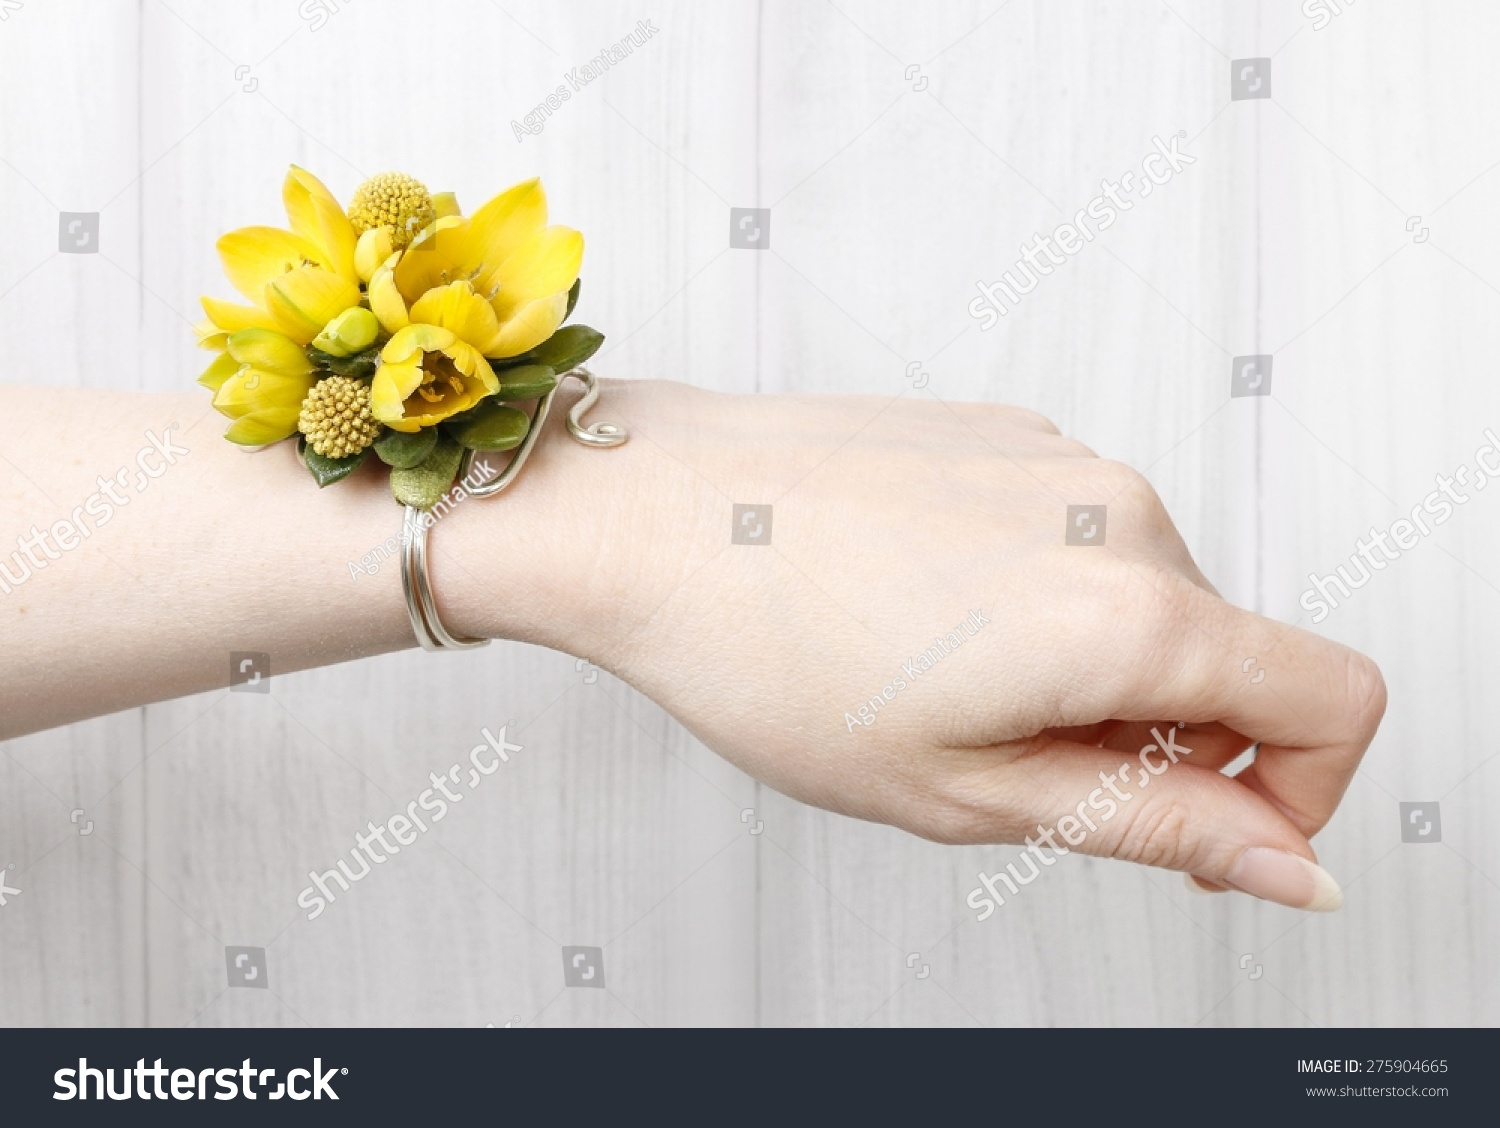 Wrist Corsage Made Yellow Flowers Stock Photo Edit Now 275904665